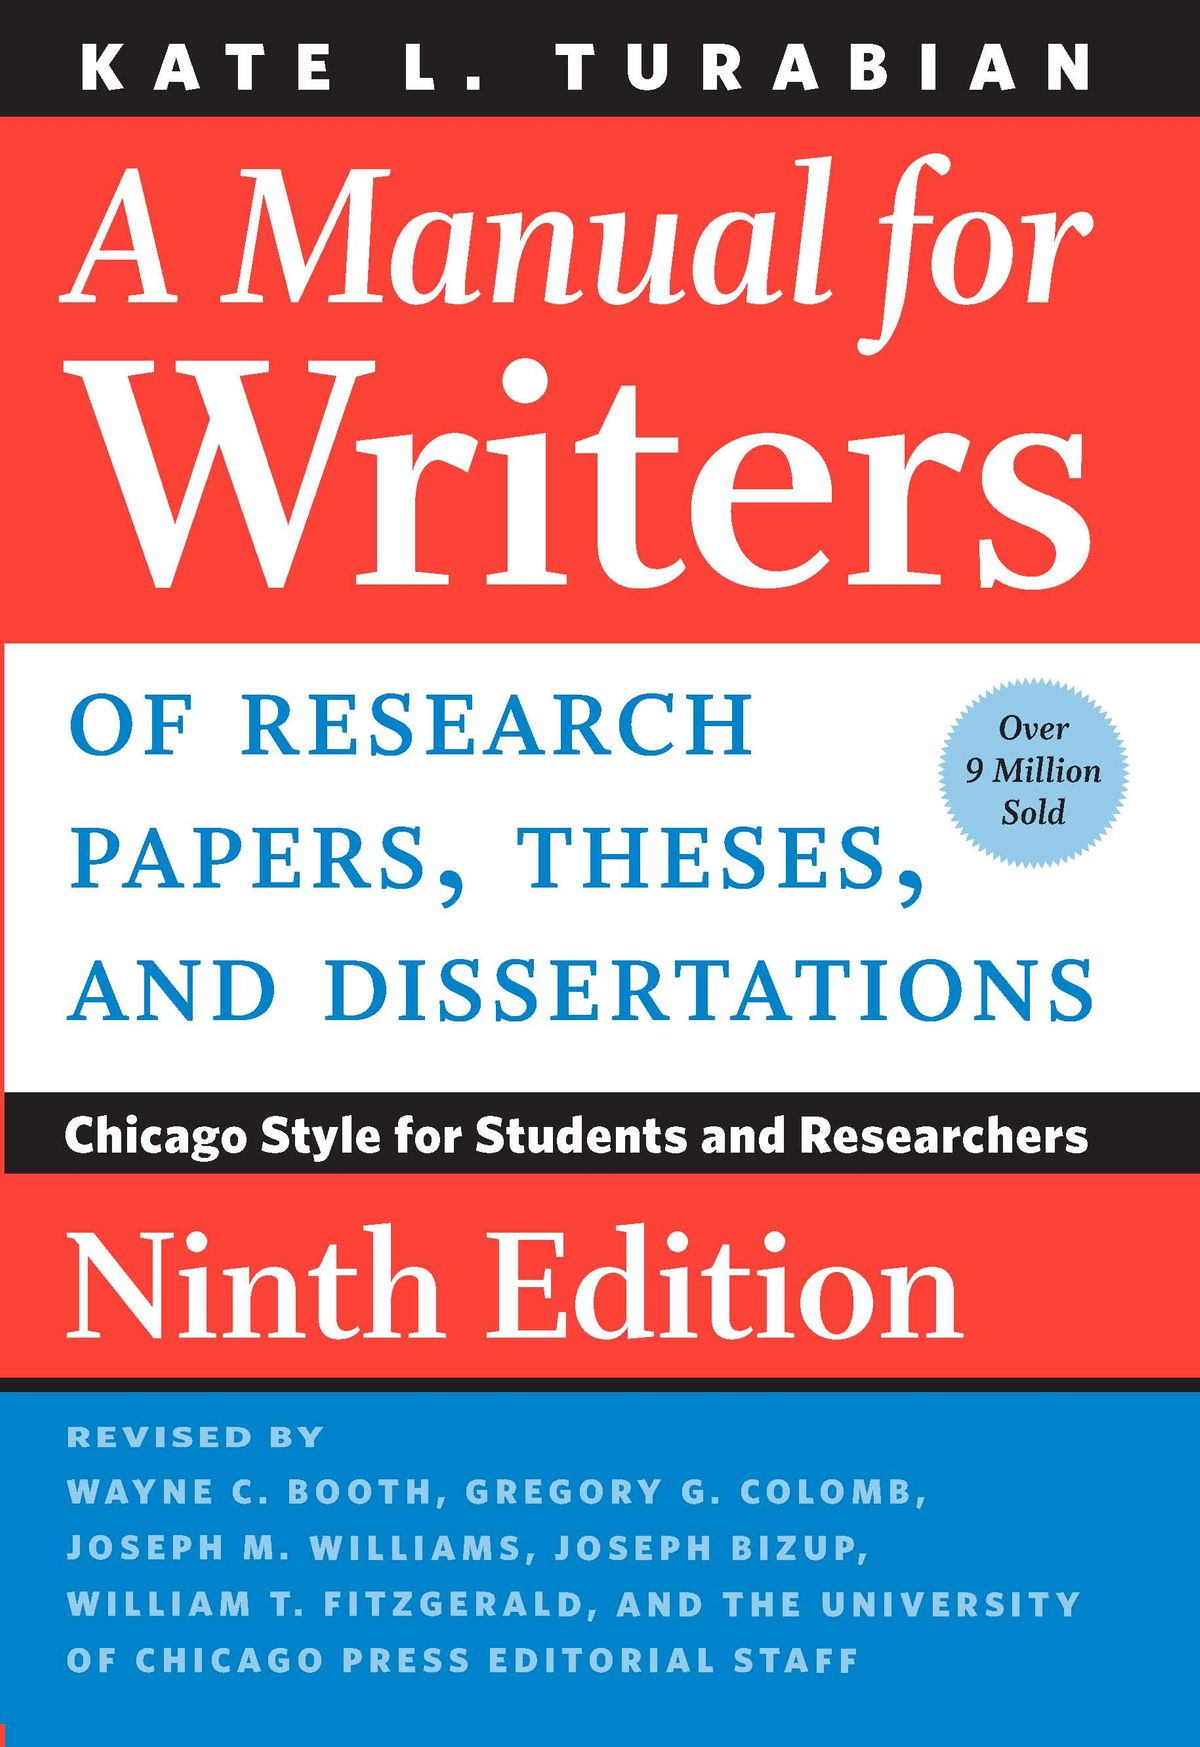 012 Research Paper Papers For Dummies Manual Writers Of Theses And Dissertations Ninth Unforgettable Pdf Download Free Full